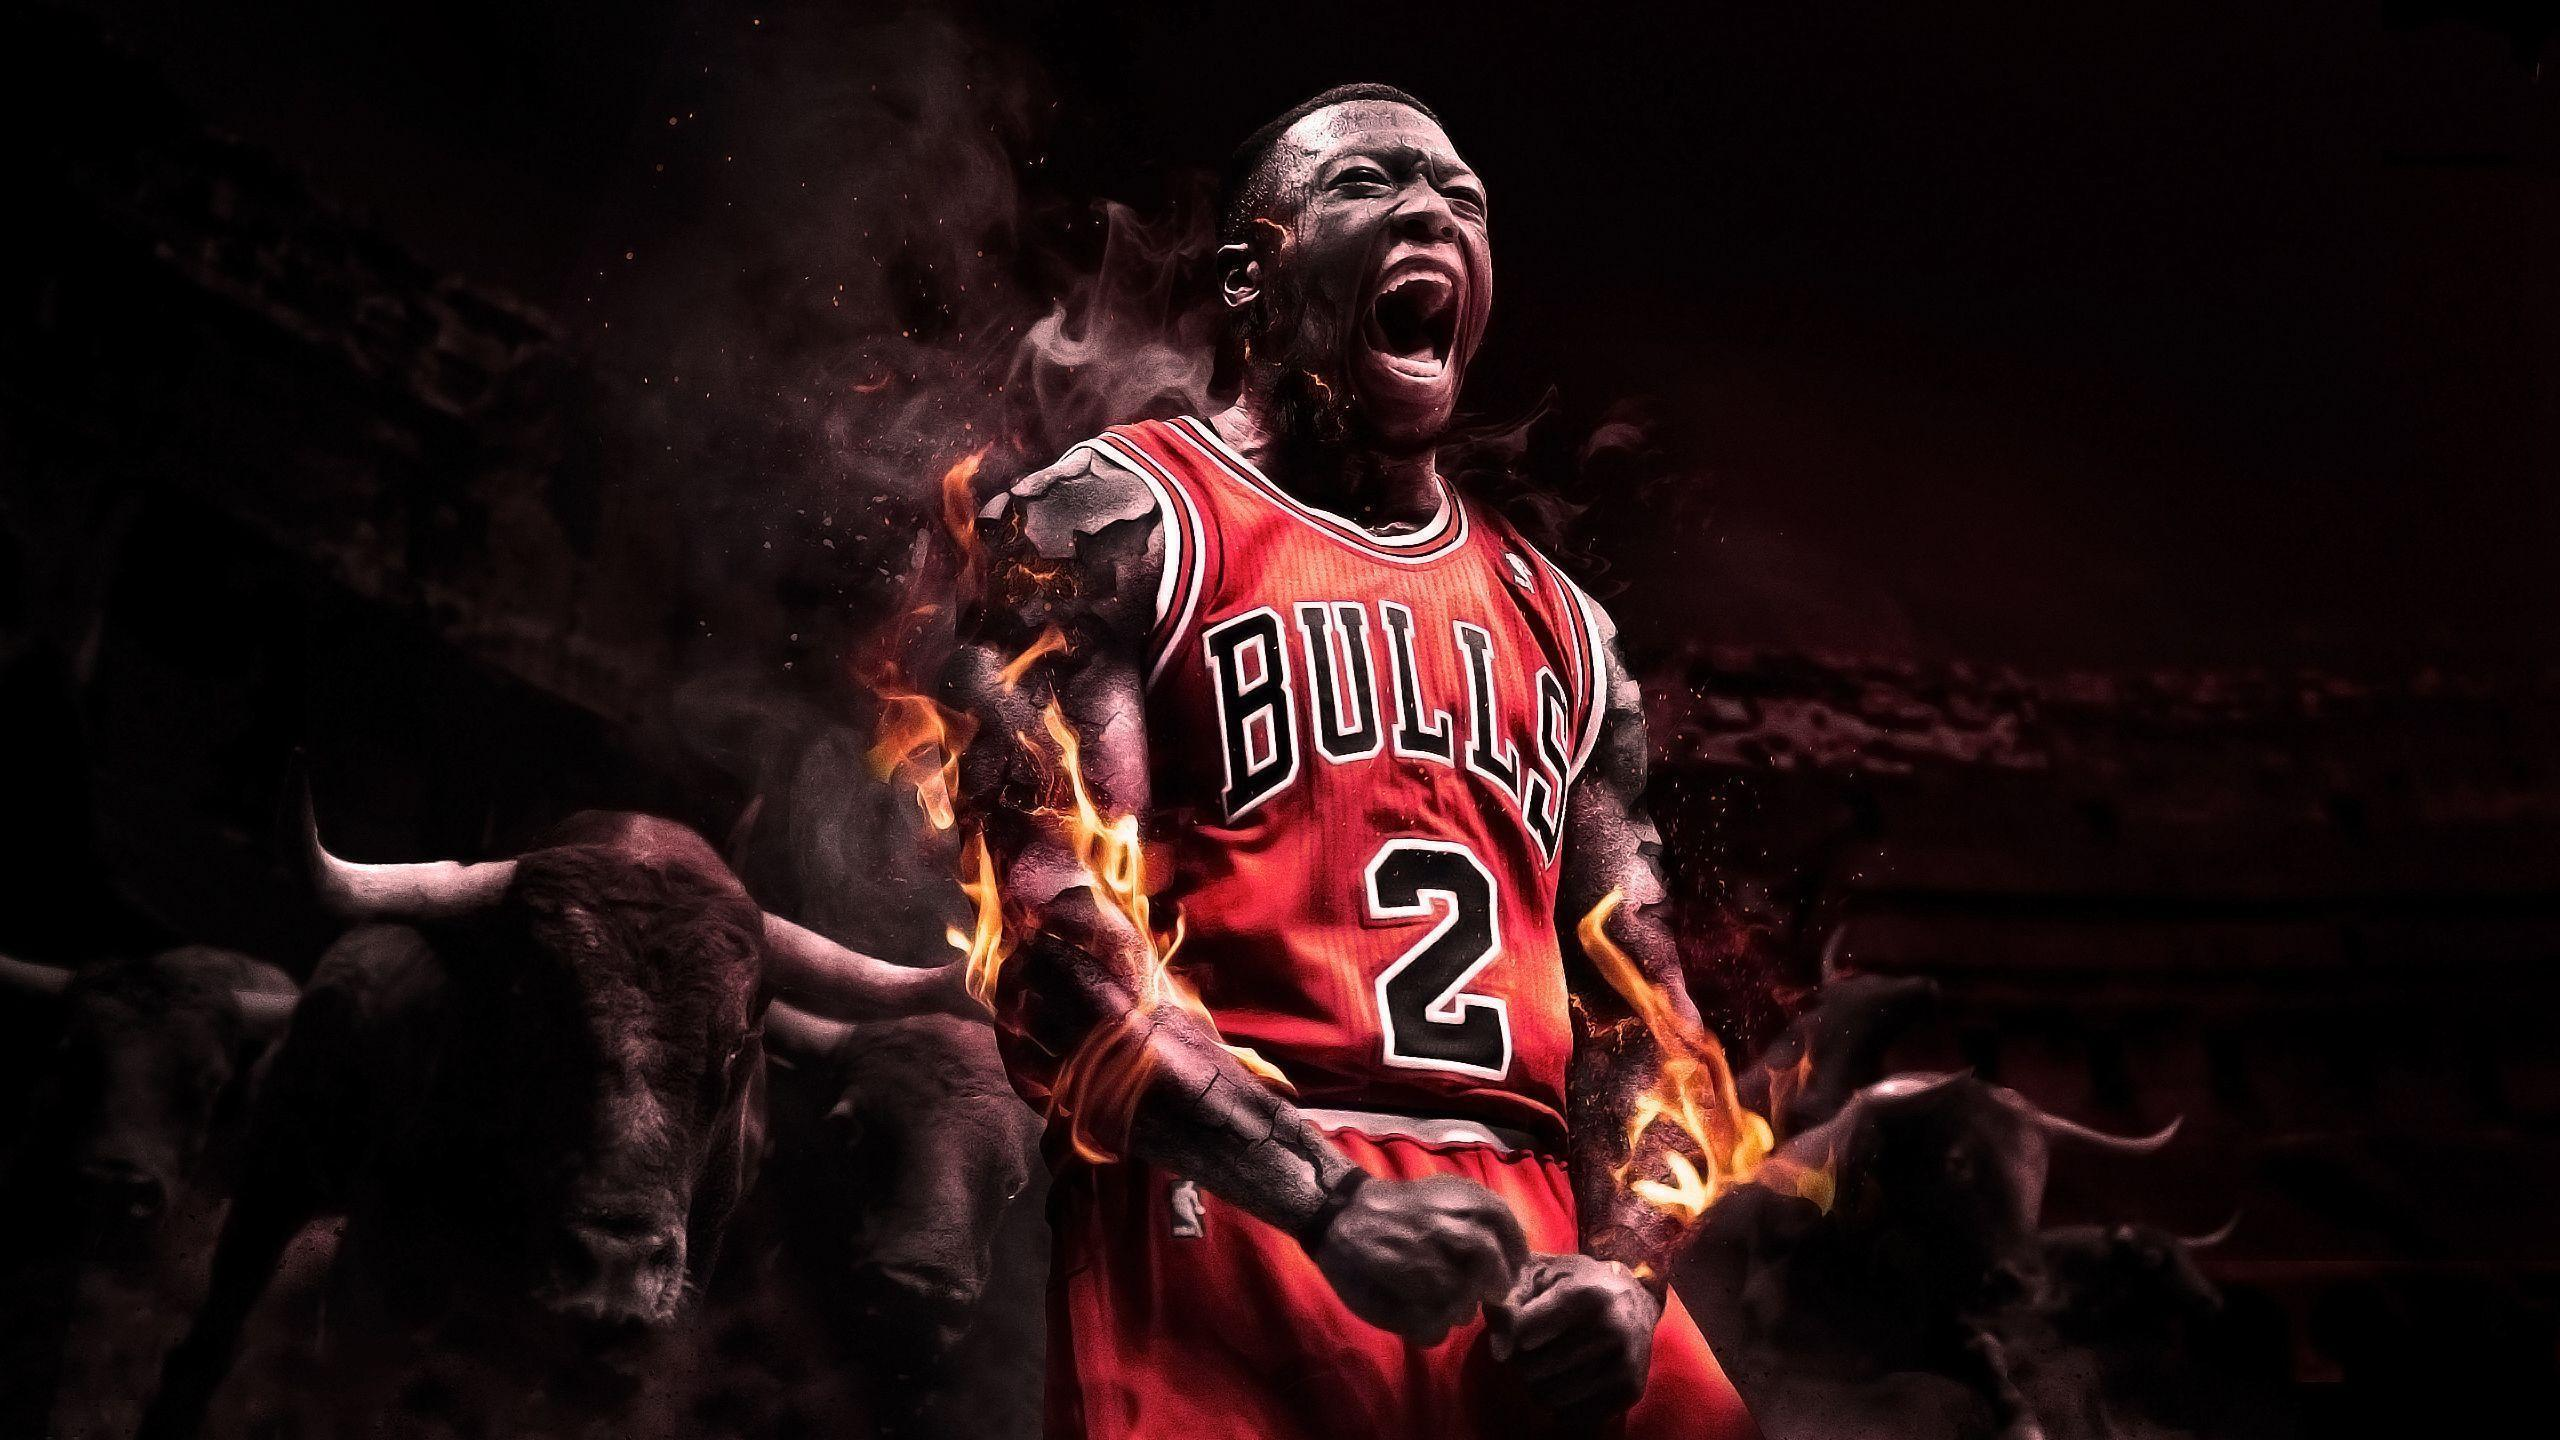 Collection of Basketball Player Wallpapers on HDWallpapers